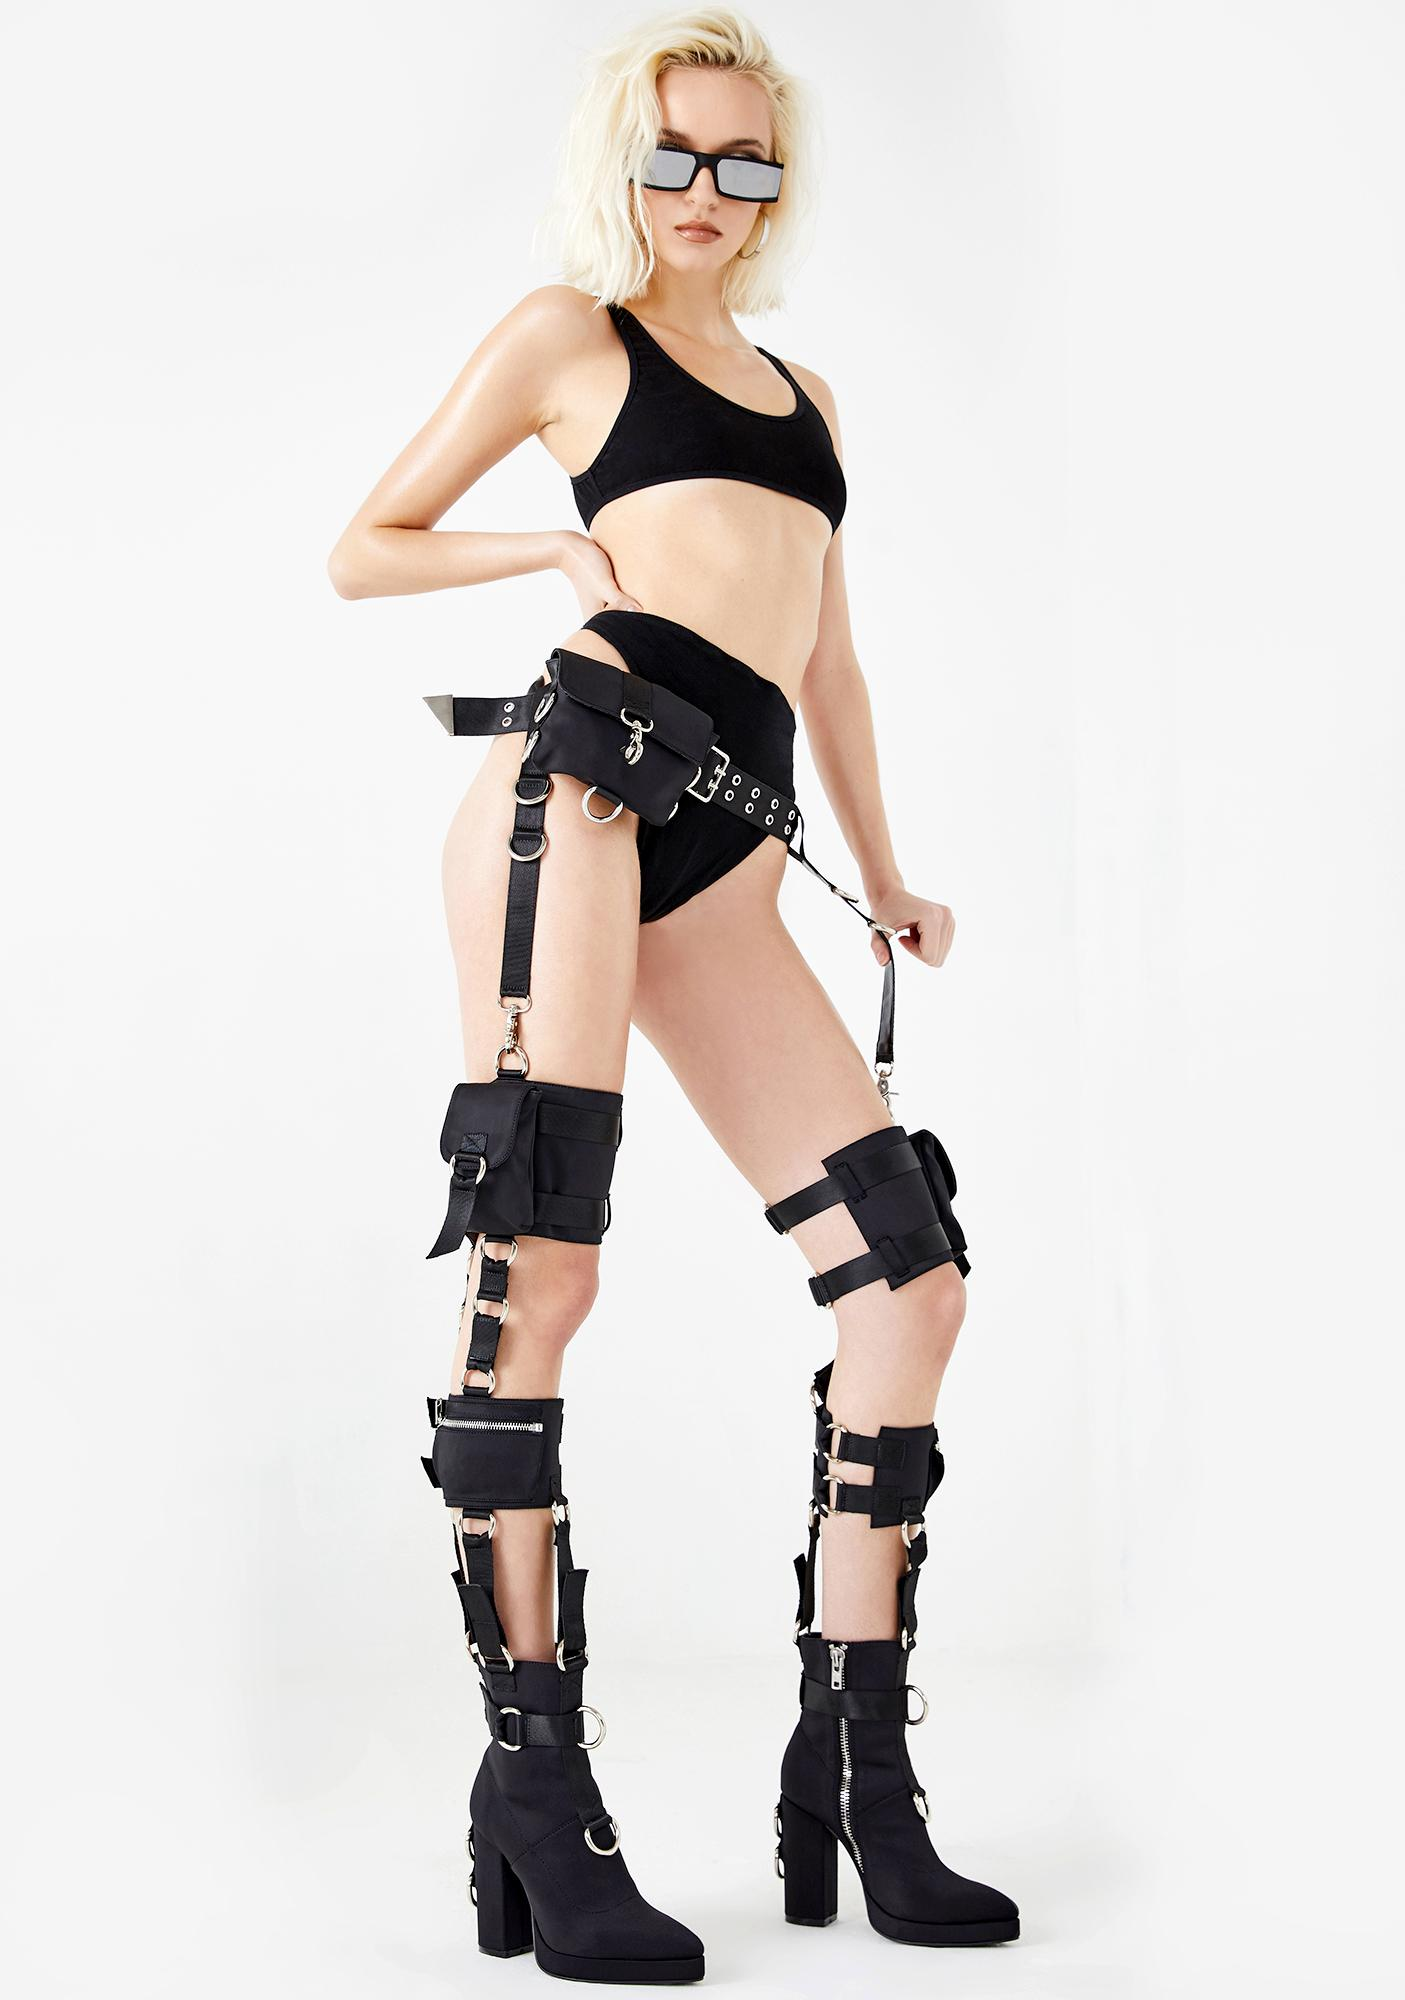 Poster Grl Rated R Harness Thigh Highs